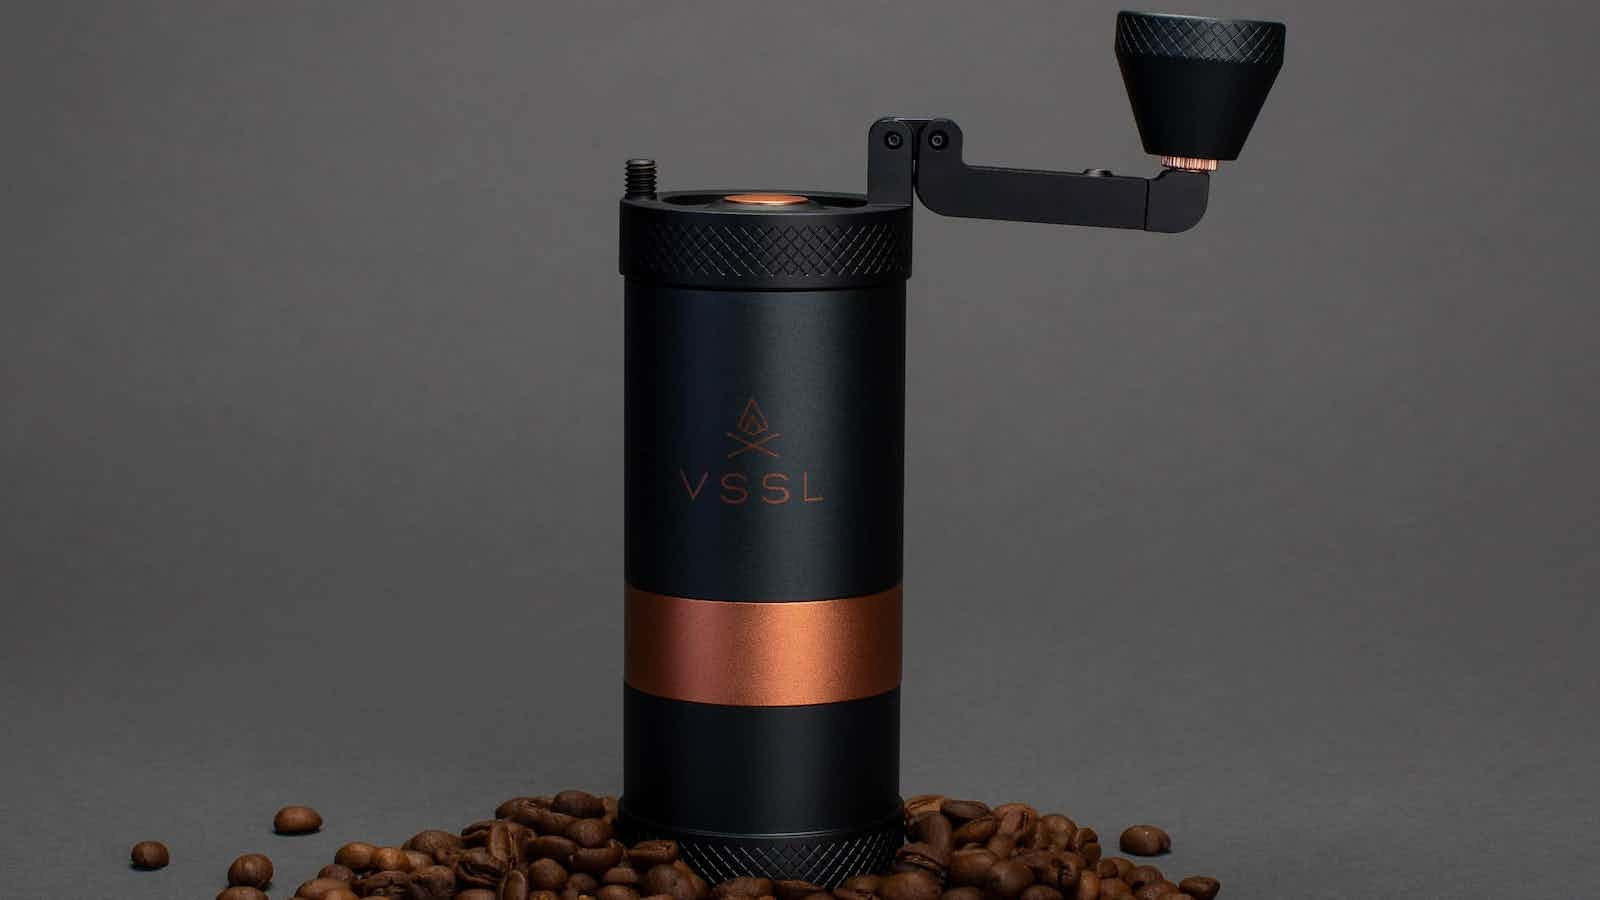 VSSL Java Handheld Coffee Grinder lets you make coffee on the go with 30 grind settings